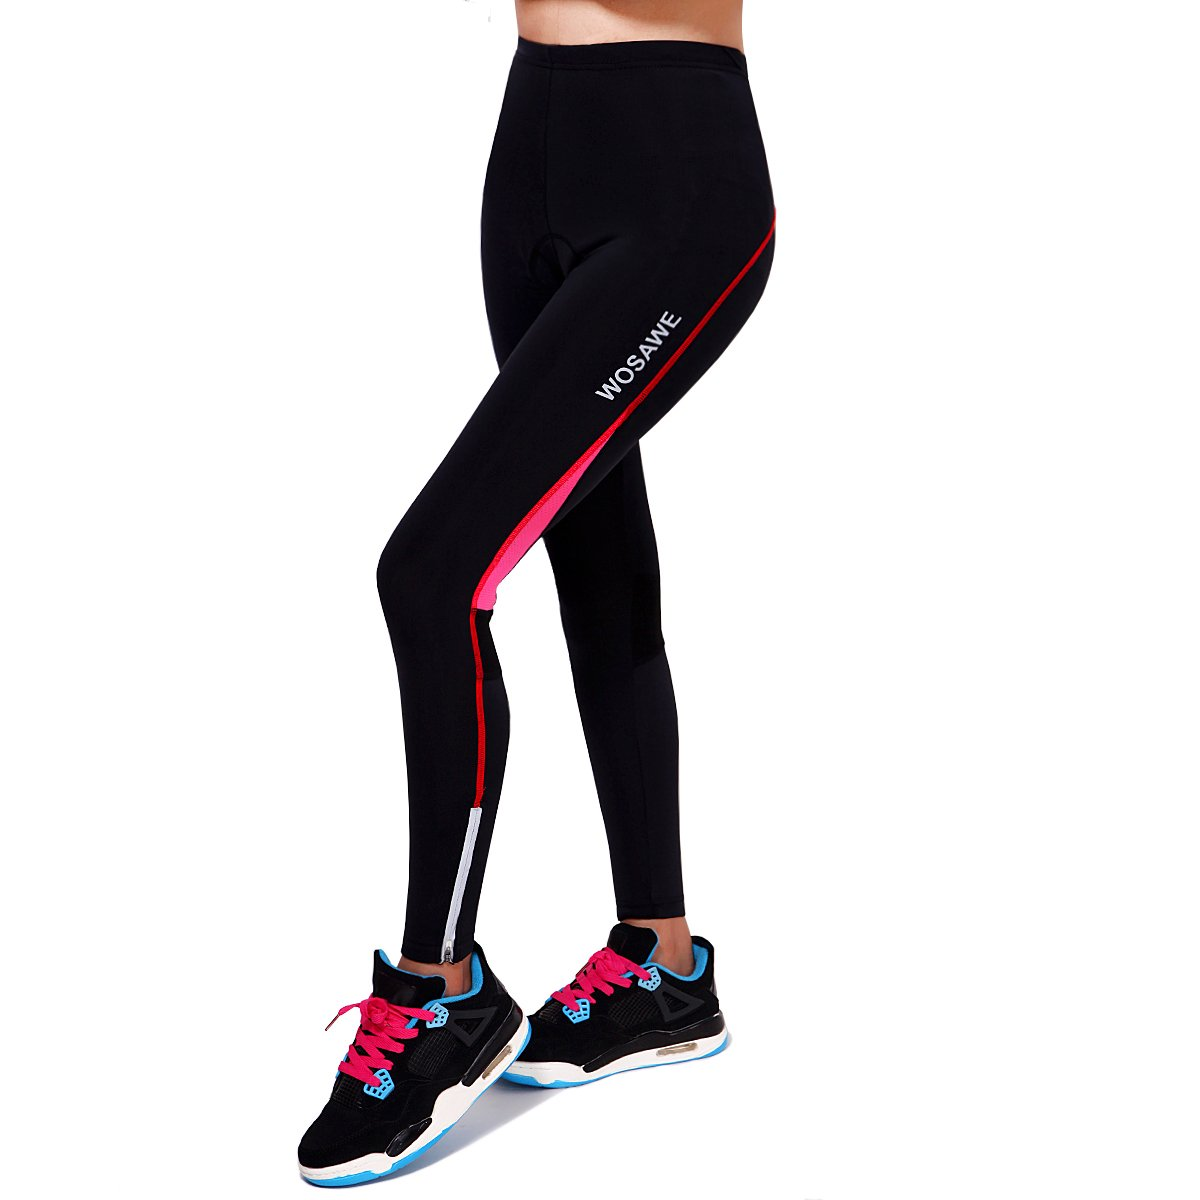 Wolfbike Women's Compression Tights Pants Base Layer Leggings Running Workout